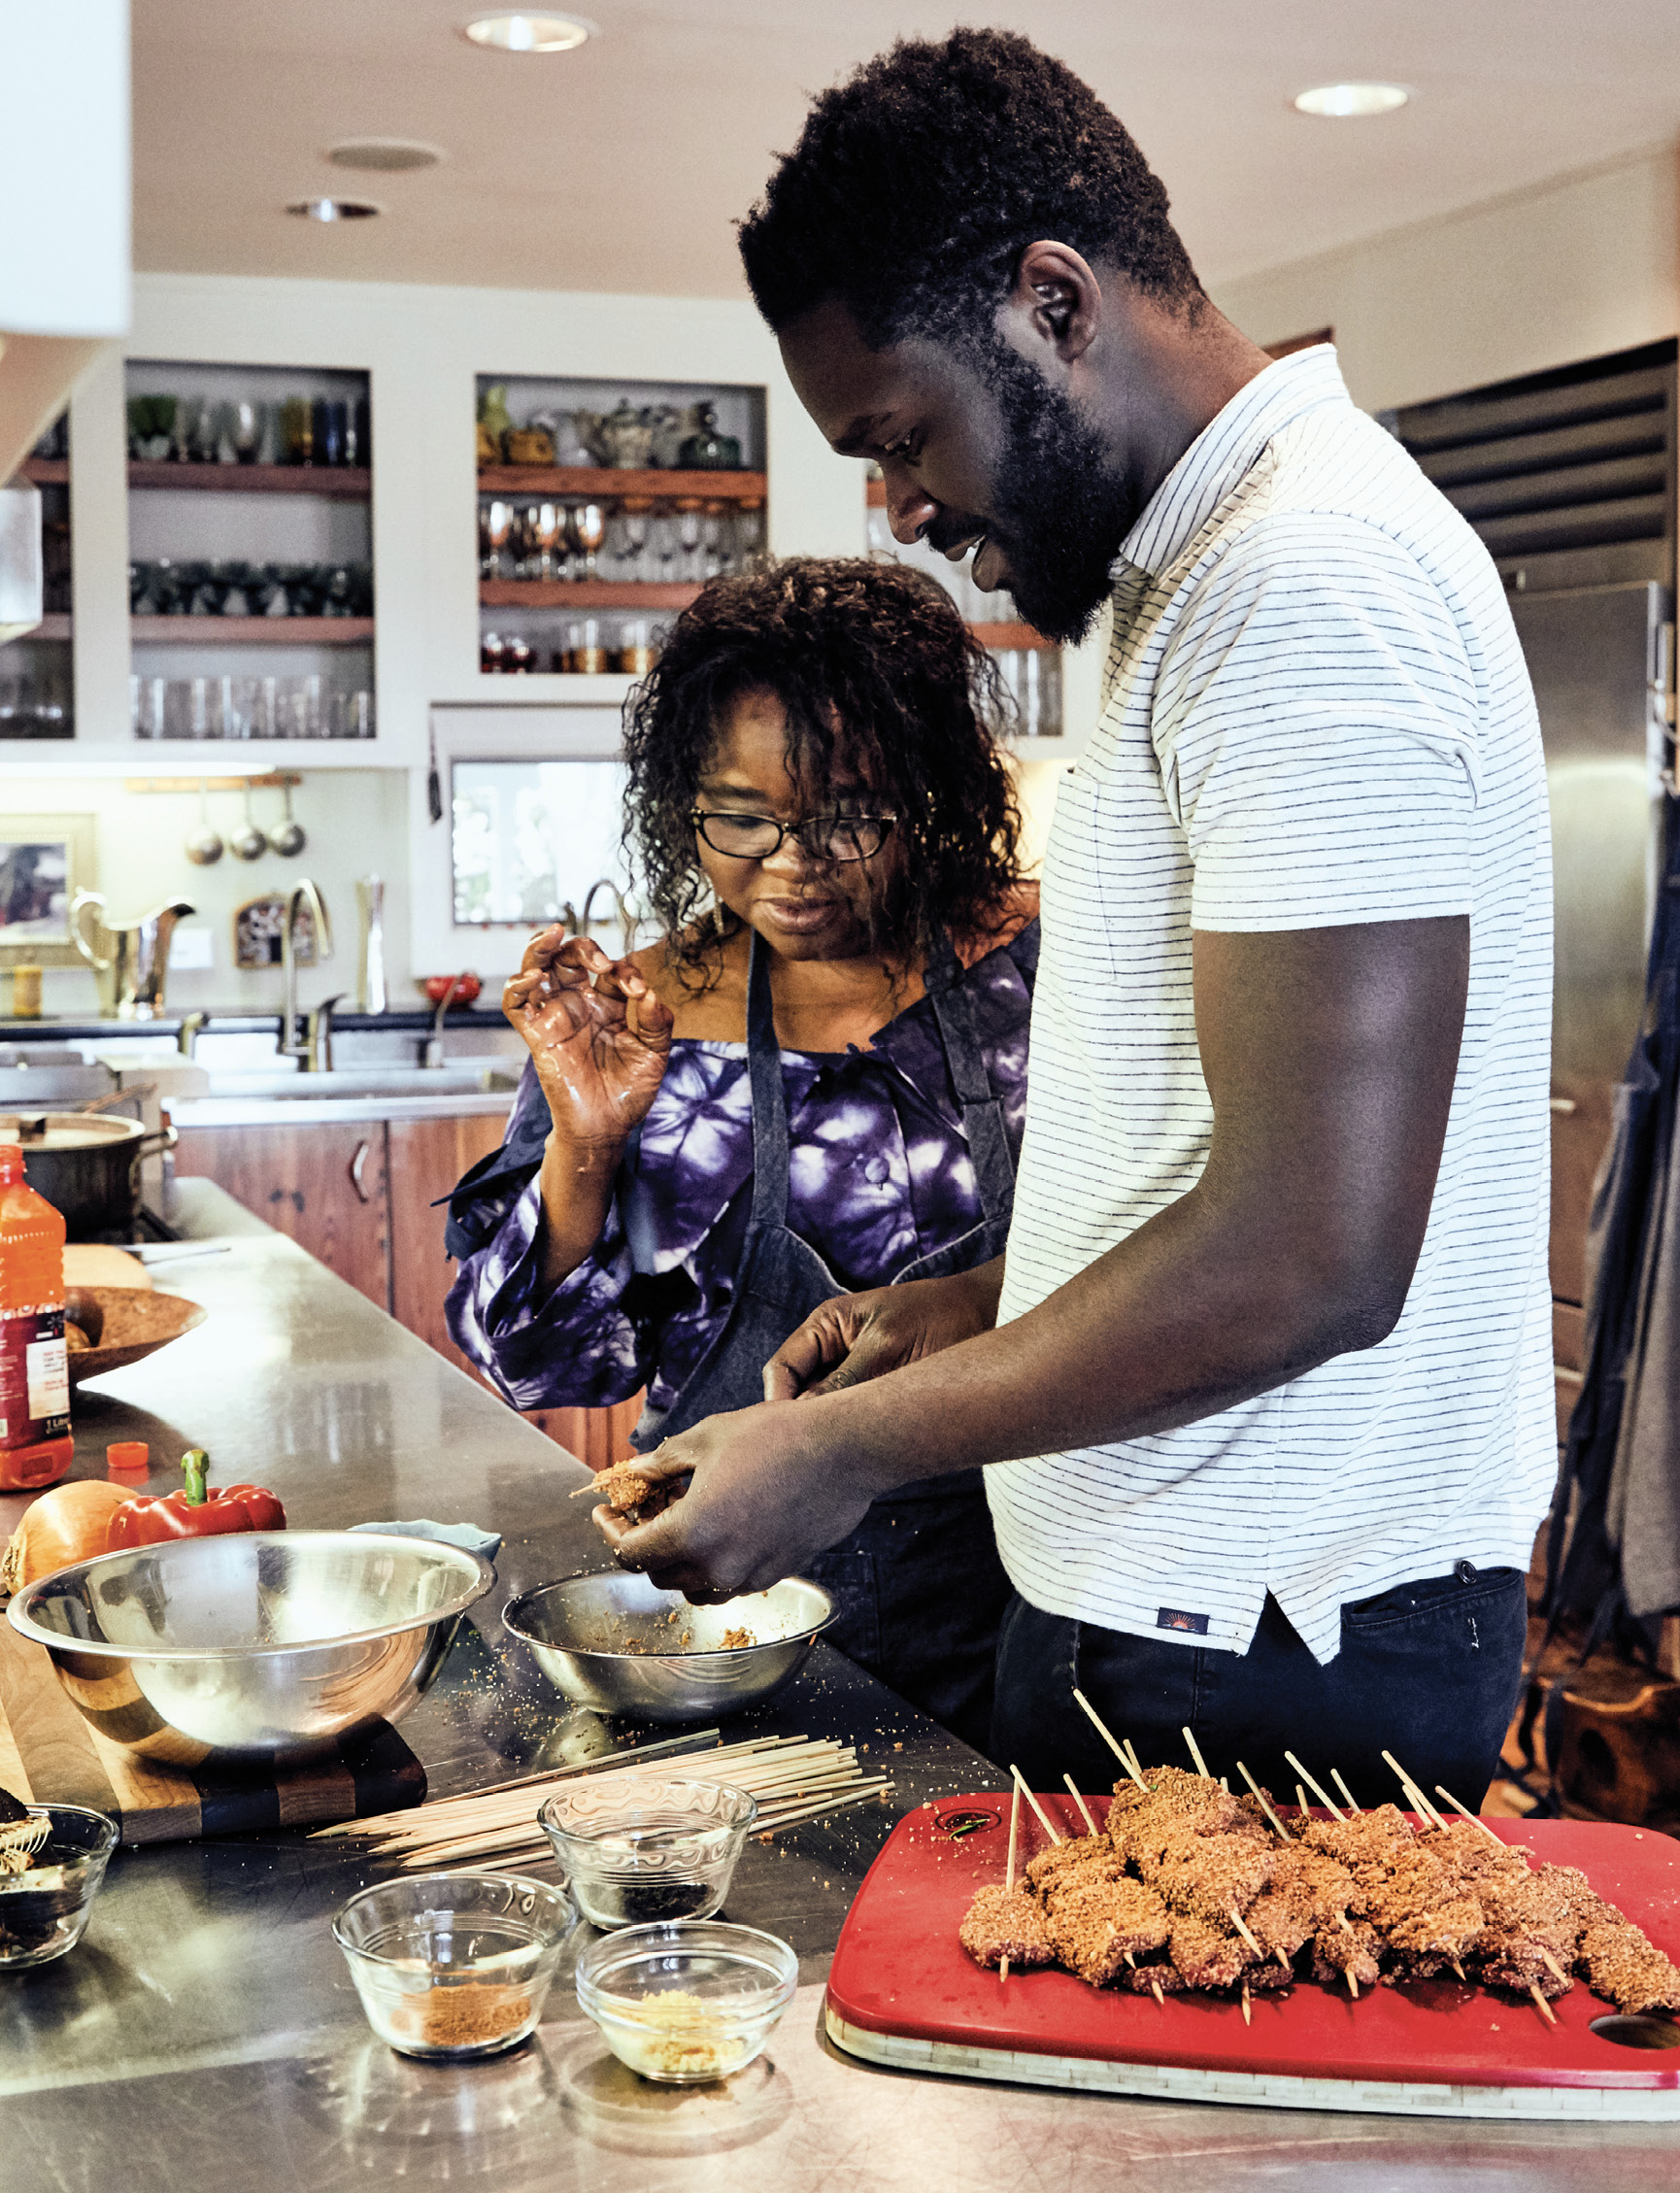 """Though he moved away from Nigeria as a baby, Femi holds an affinity for the Yoruba dishes of his youth. He often seeks his mother's cooking guidance over the phone. """"She always seems to know what I'm about to ask,"""" he says."""